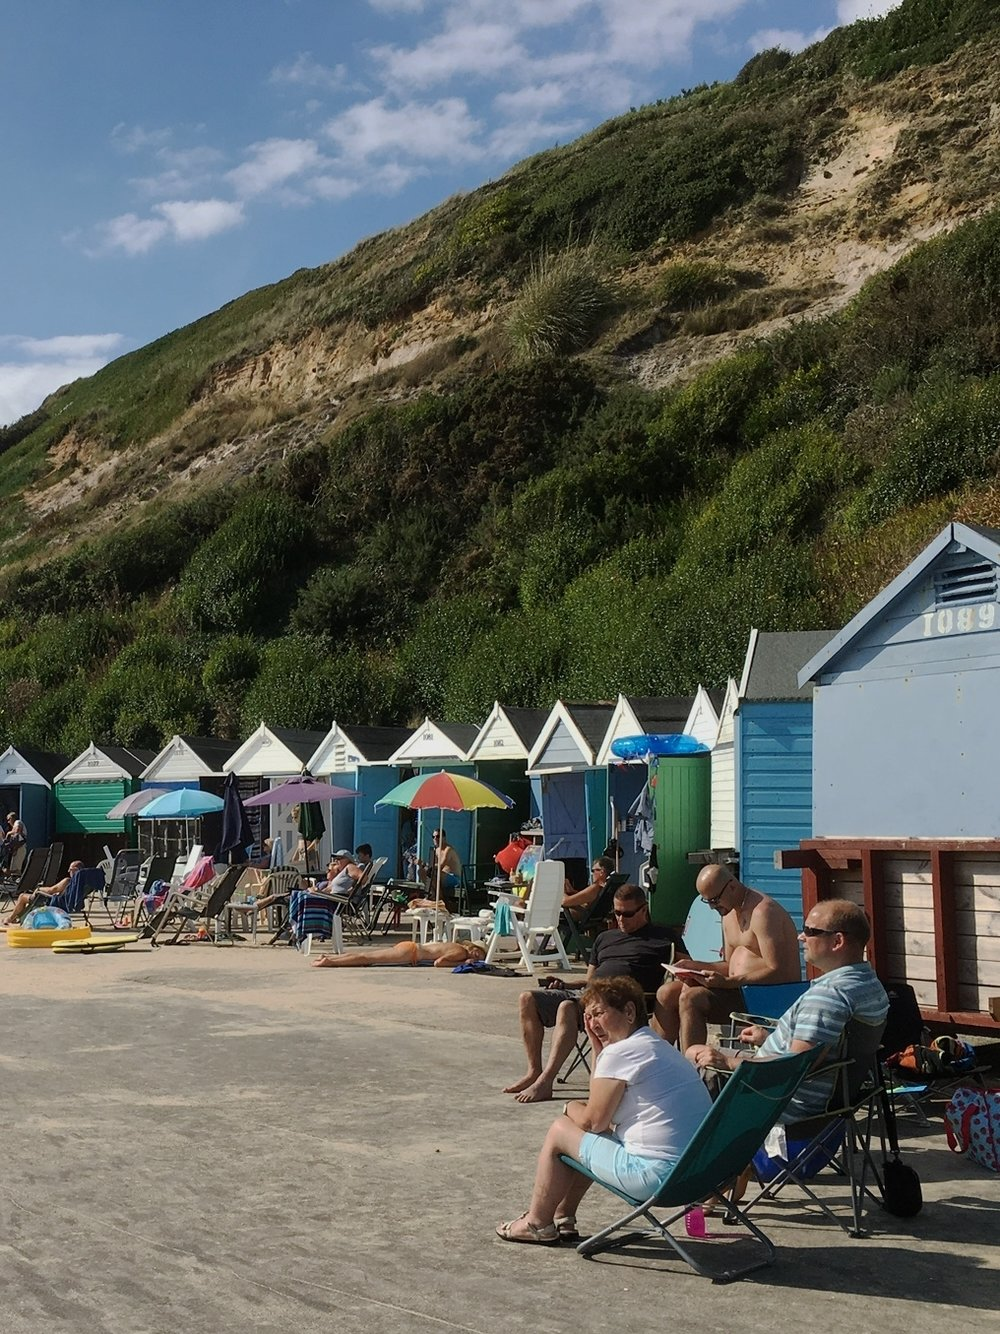 - Beaches, restaurants, activities and gift shops. Love Southbourne.